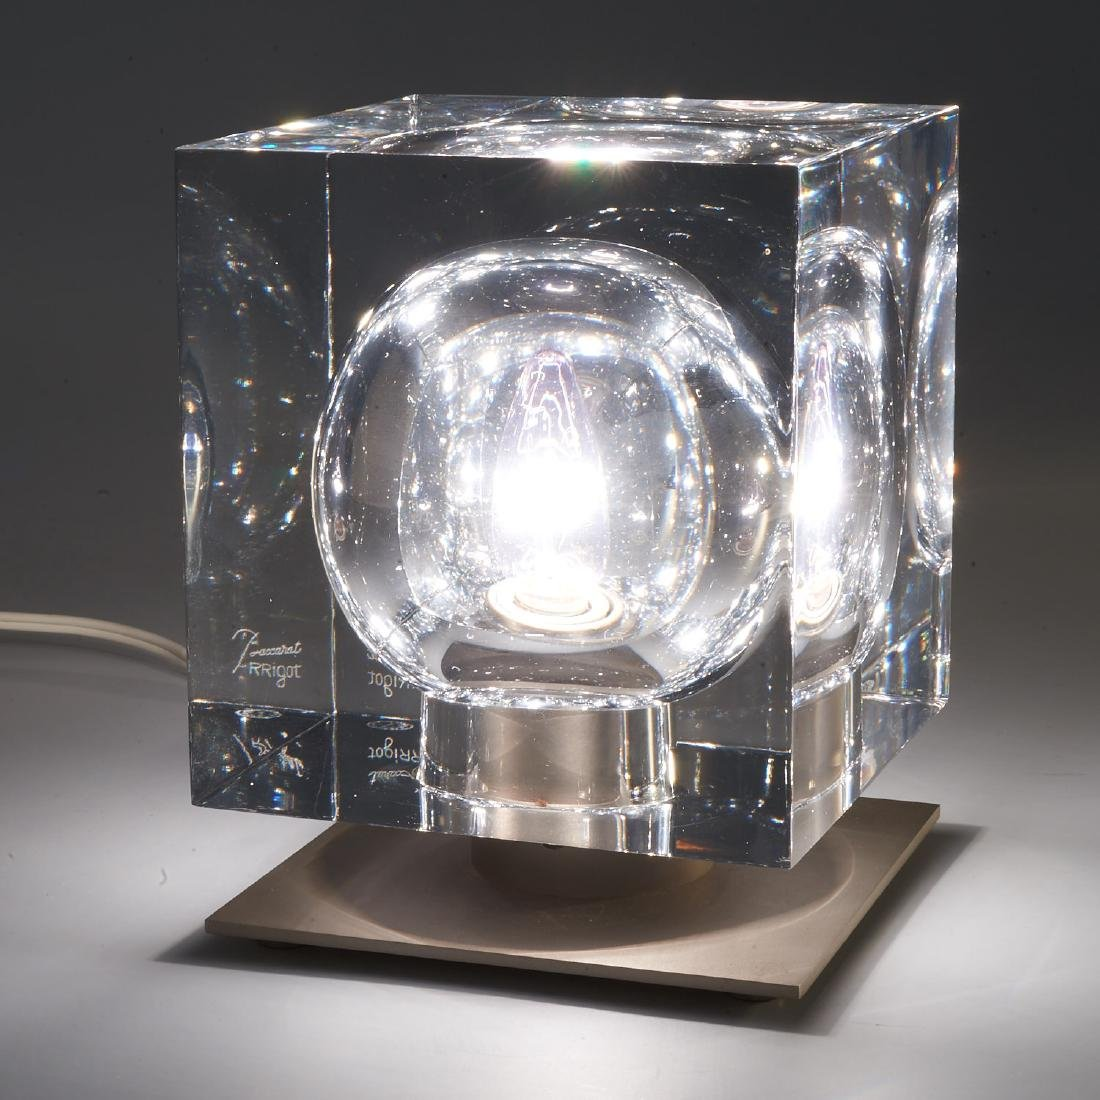 Baccarat crystal and steel lamp by Robert Rigot